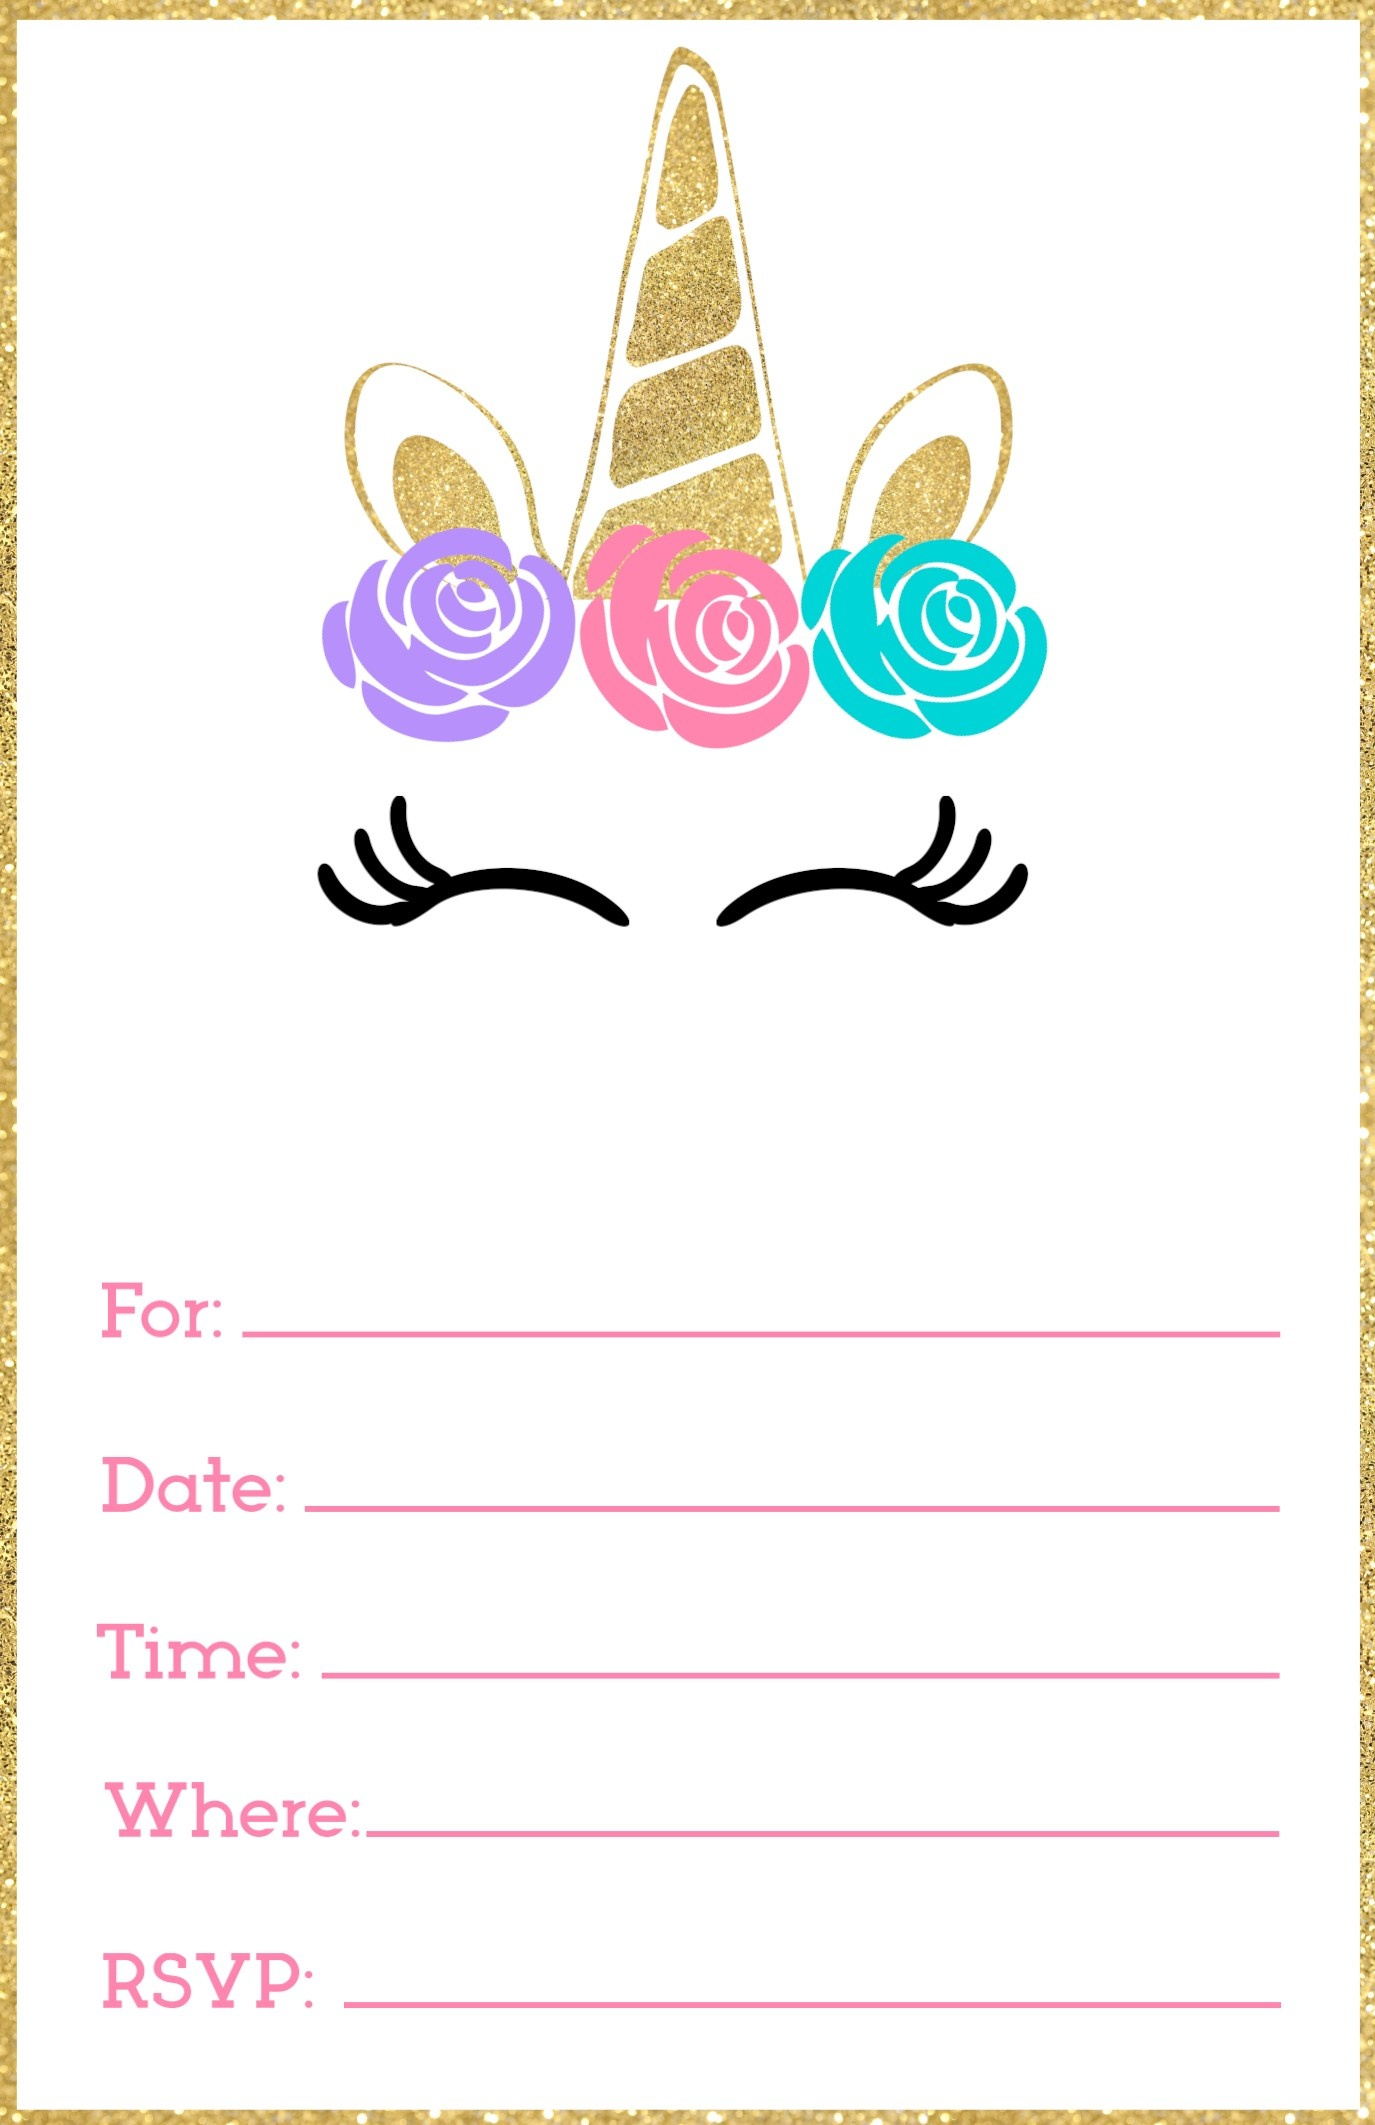 Free Printable Unicorn Invitations Template - Paper Trail Design - Free Printable Birthday Invitations With Pictures